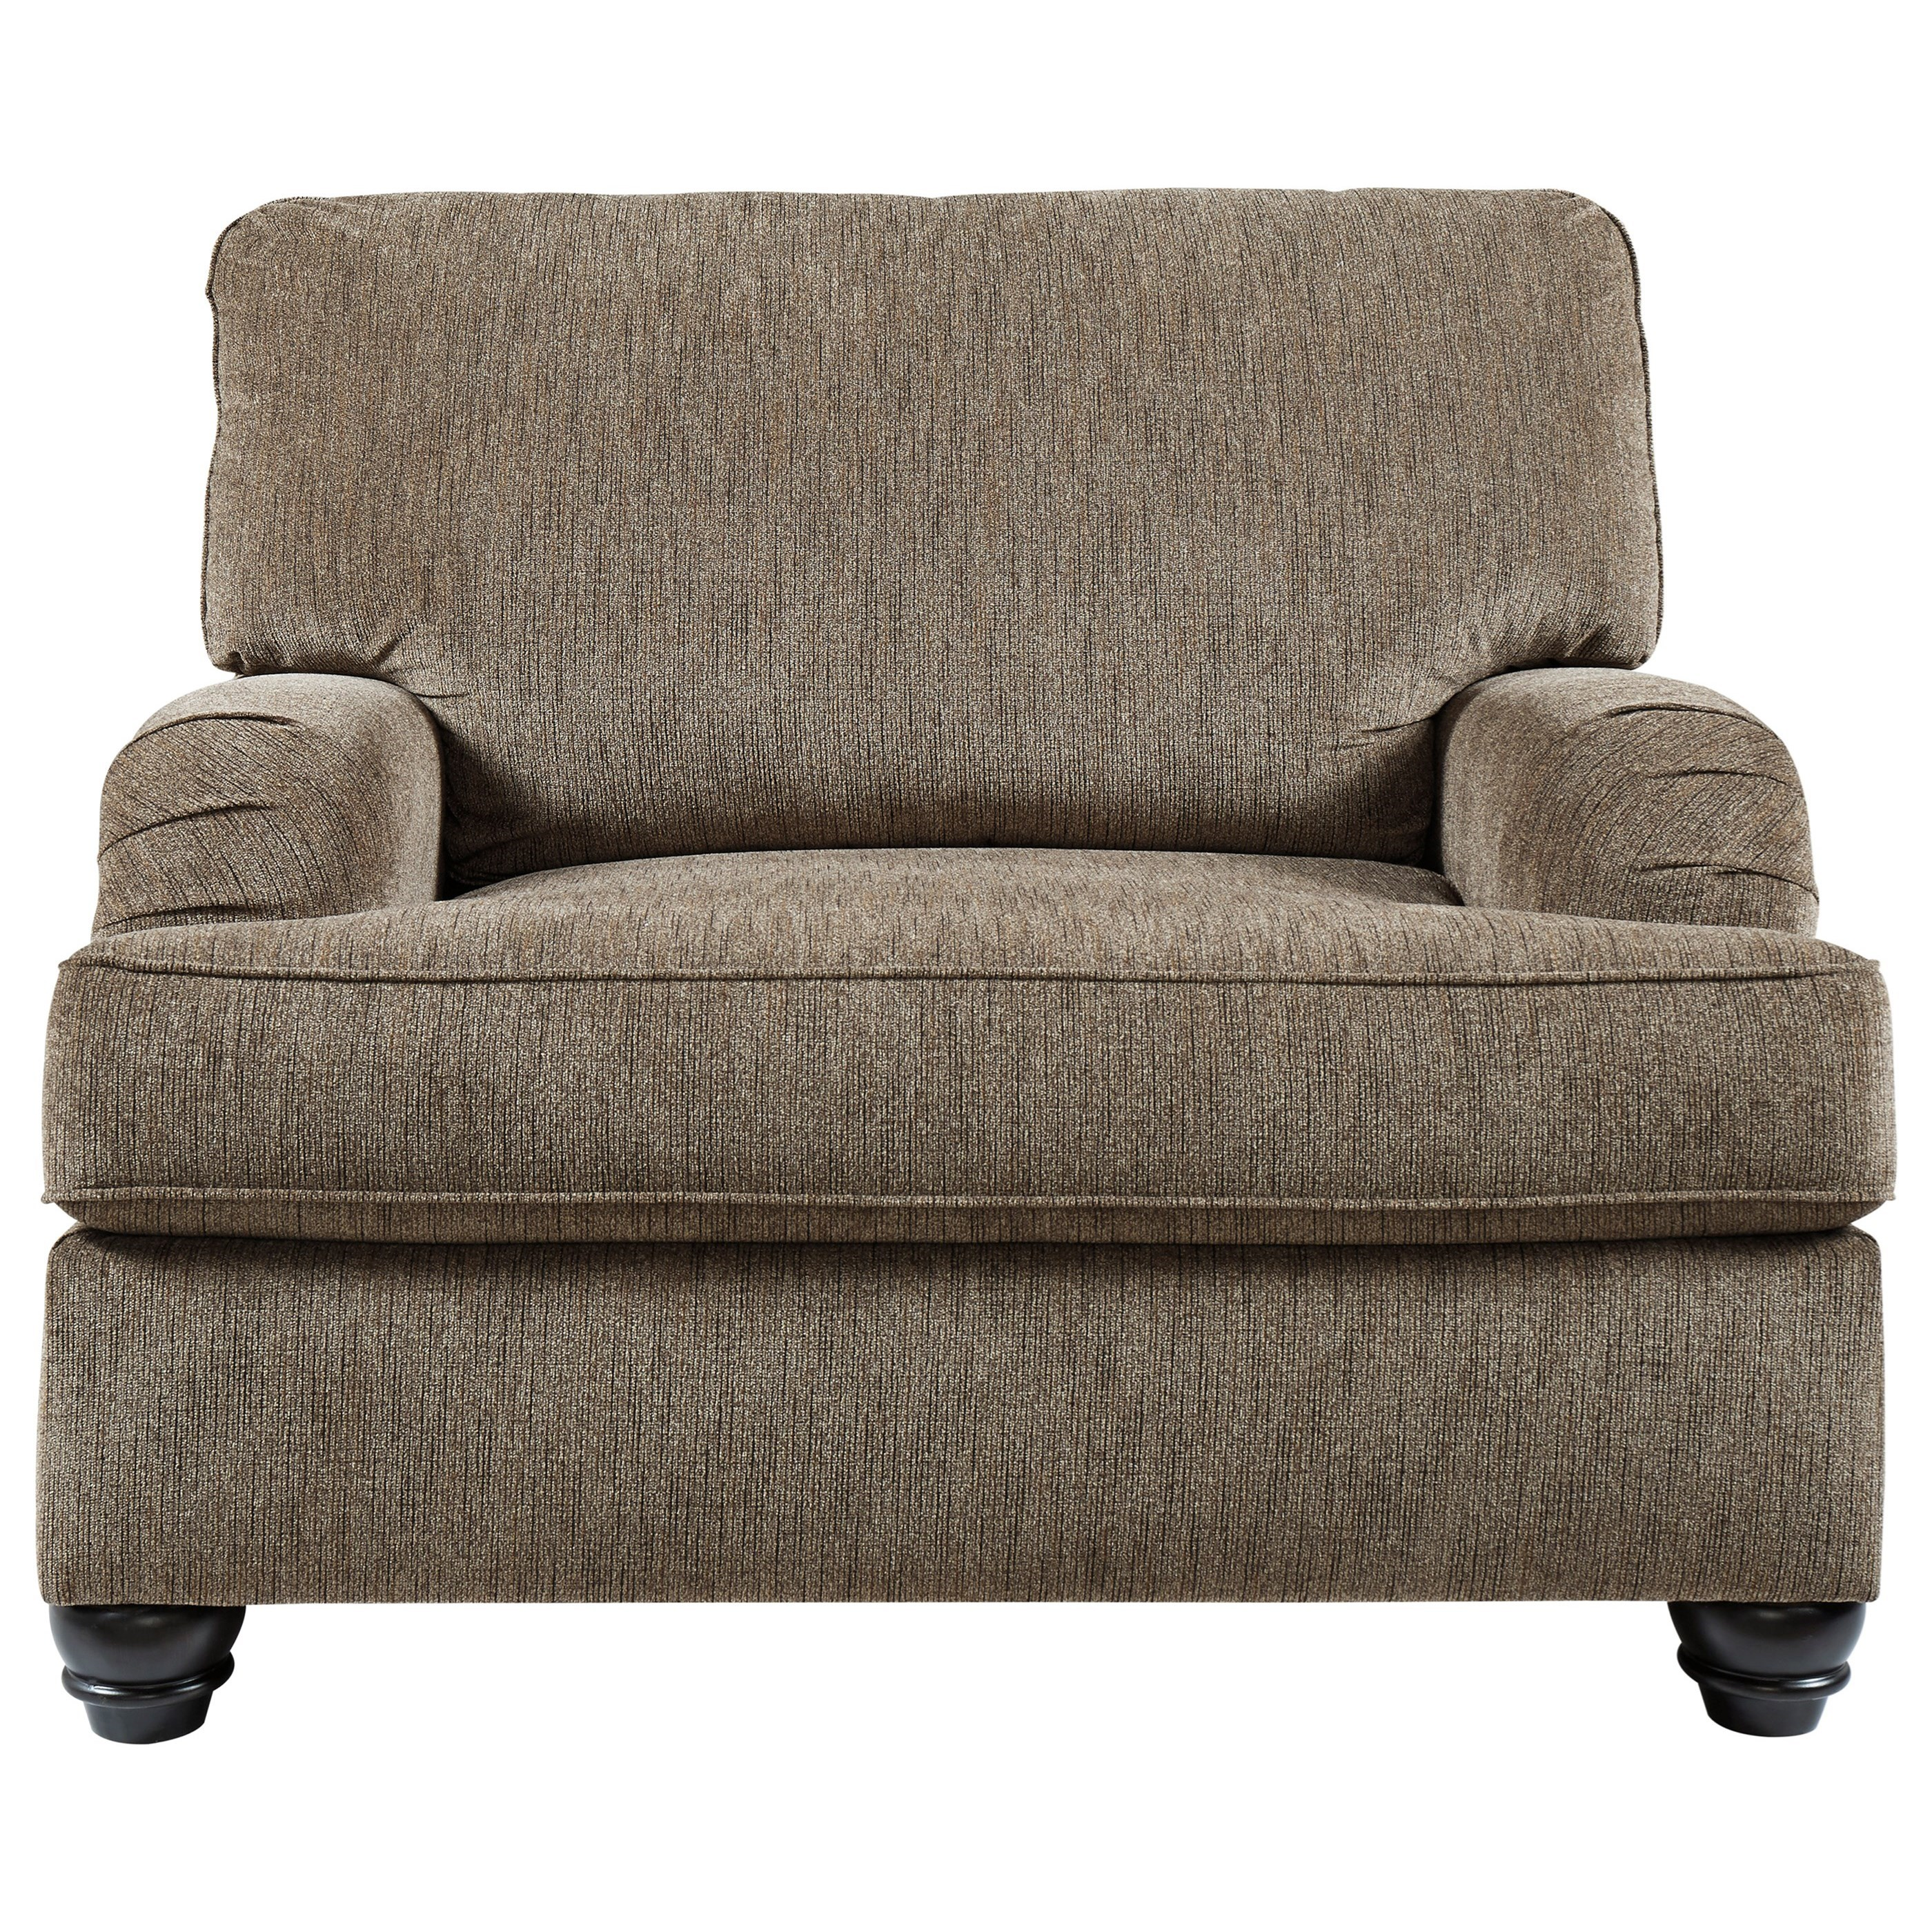 Braemar Chair and a Half by Benchcraft at Beck's Furniture